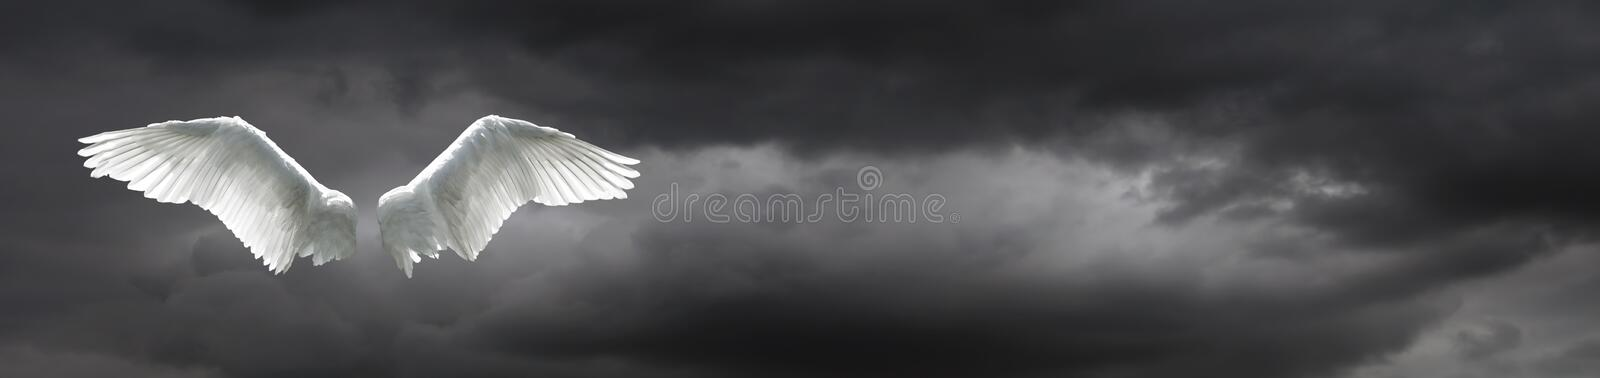 Angel wings with stormy sky background royalty free stock photo